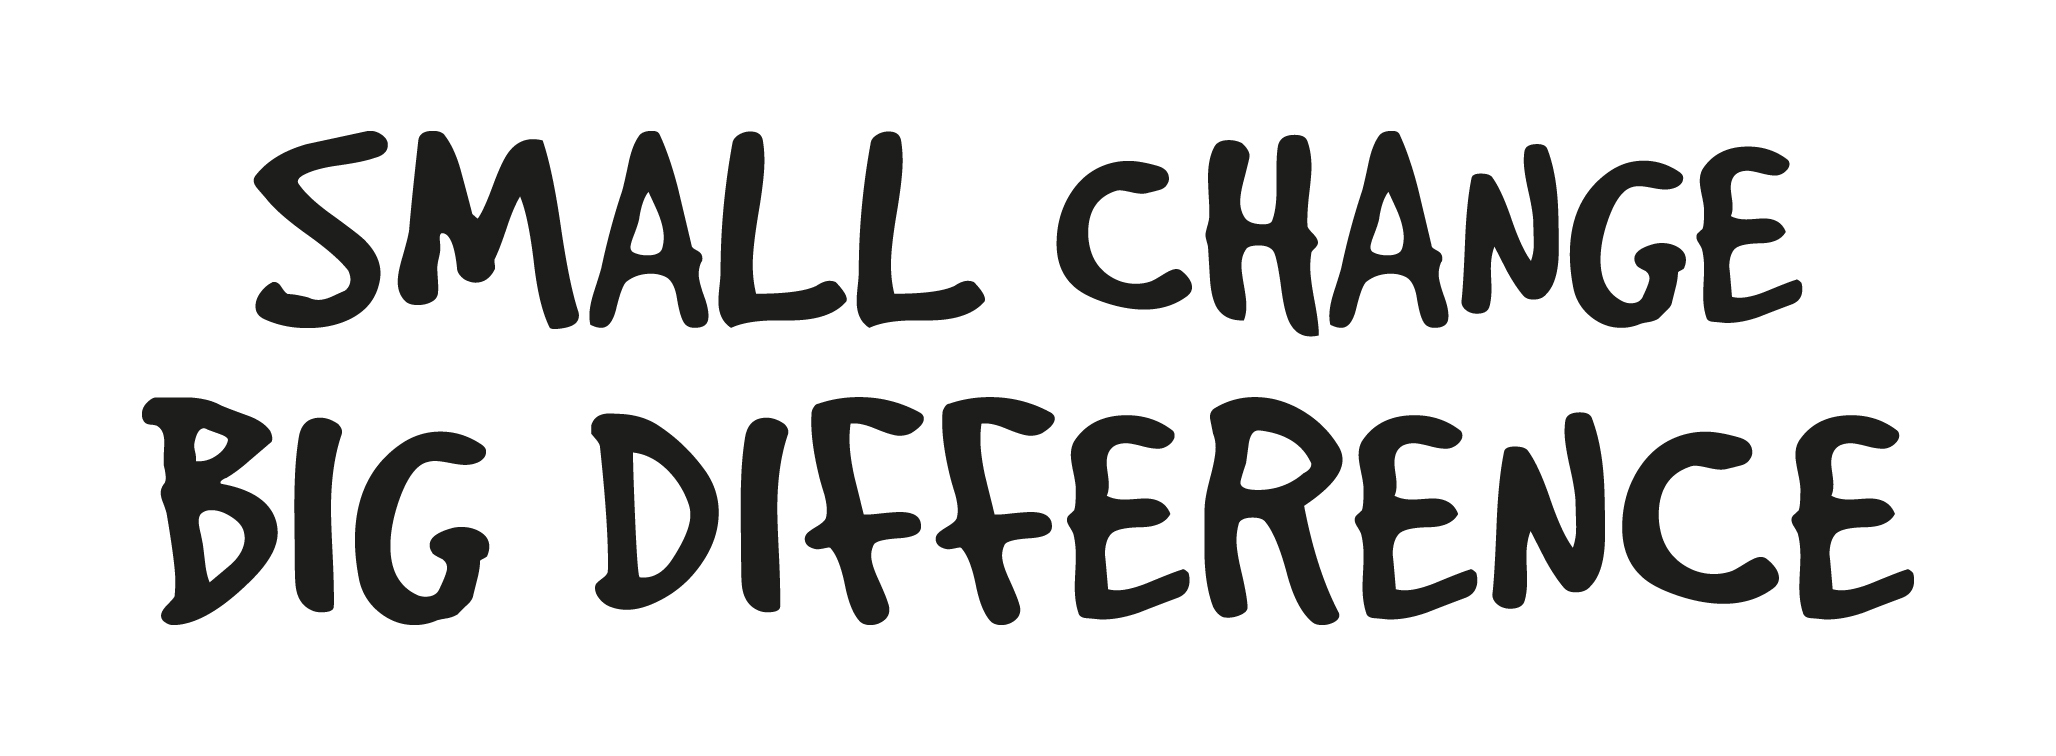 small change big difference logo